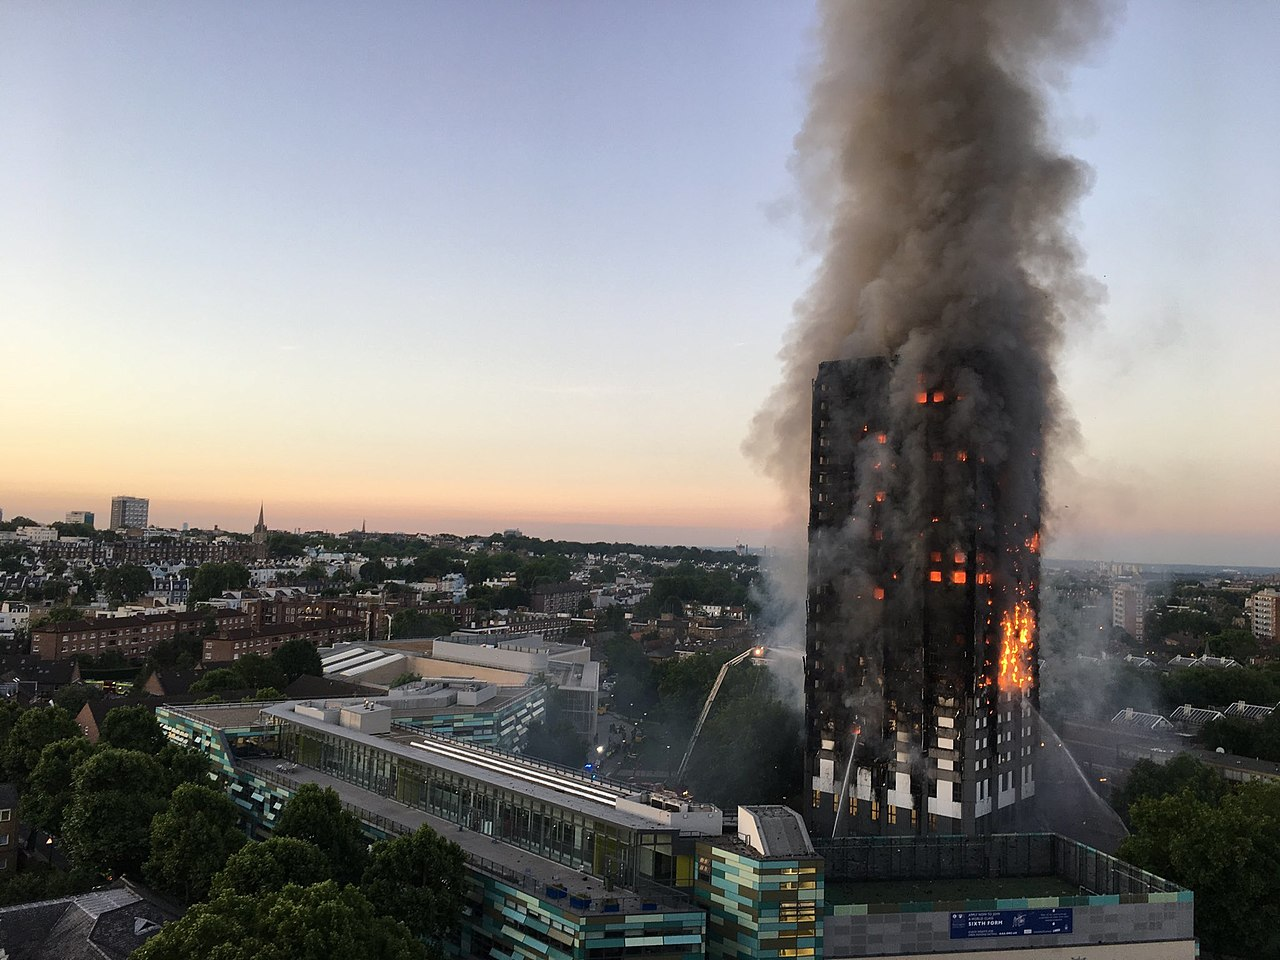 The fire at Grenfell Tower in North Kensington, London, July 14, 2017. (Natalie Oxford via Wikimedia)